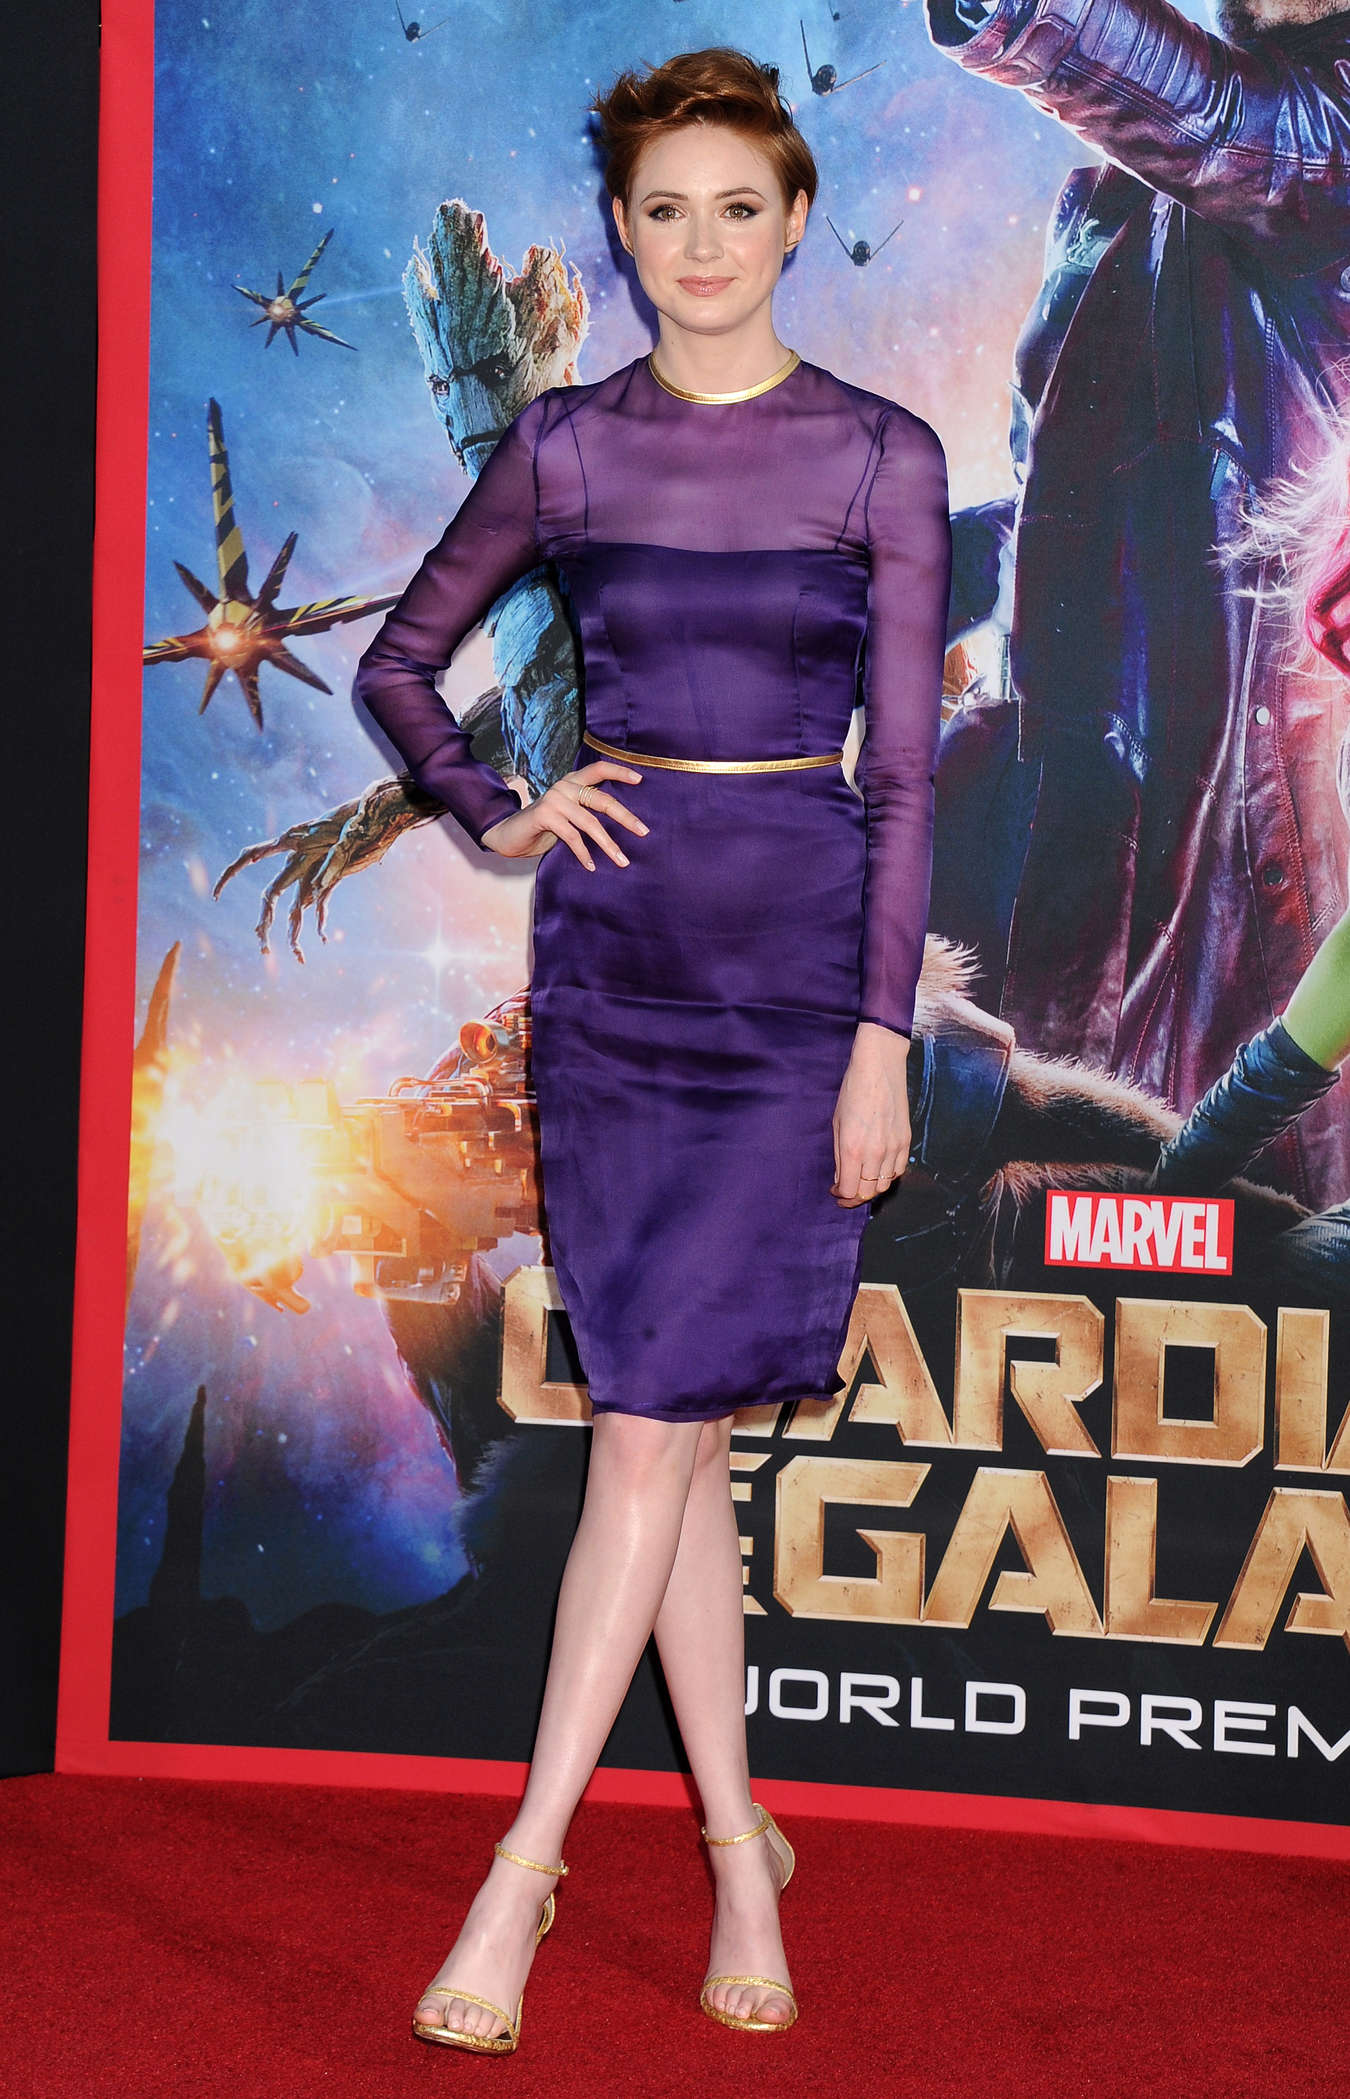 Karen Gillan at Guardians of the Galaxy premiere www.scifiempire.net